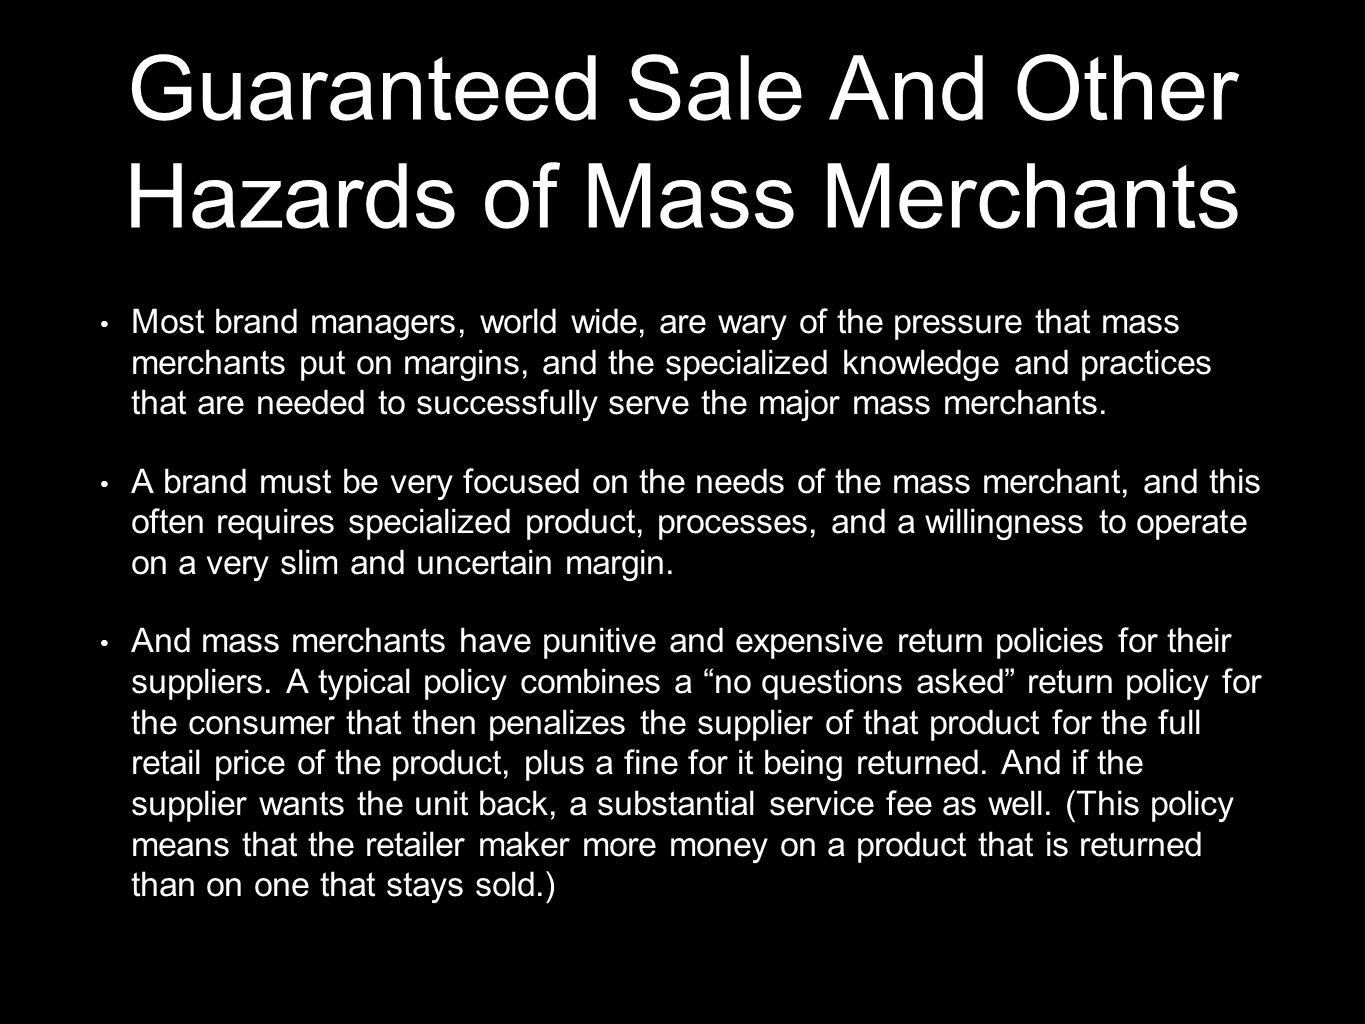 Guaranteed Sale And Other Hazards of Mass Merchants Most brand managers, world wide, are wary of the pressure that mass merchants put on margins, and the specialized knowledge and practices that are needed to successfully serve the major mass merchants.